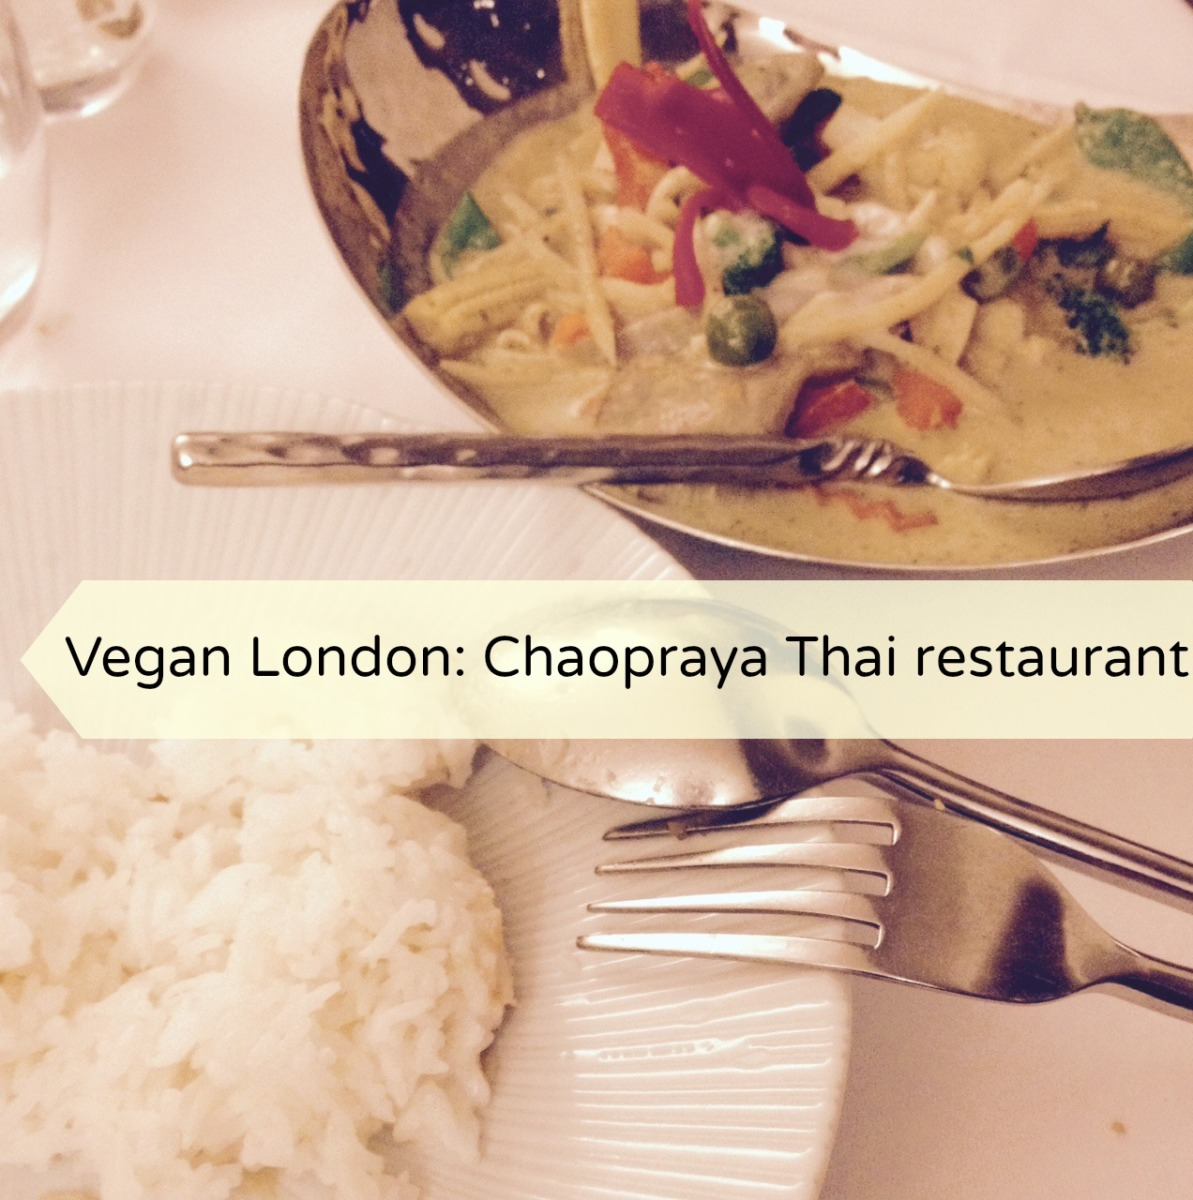 Vegan London: Chaopraya Eat Thai